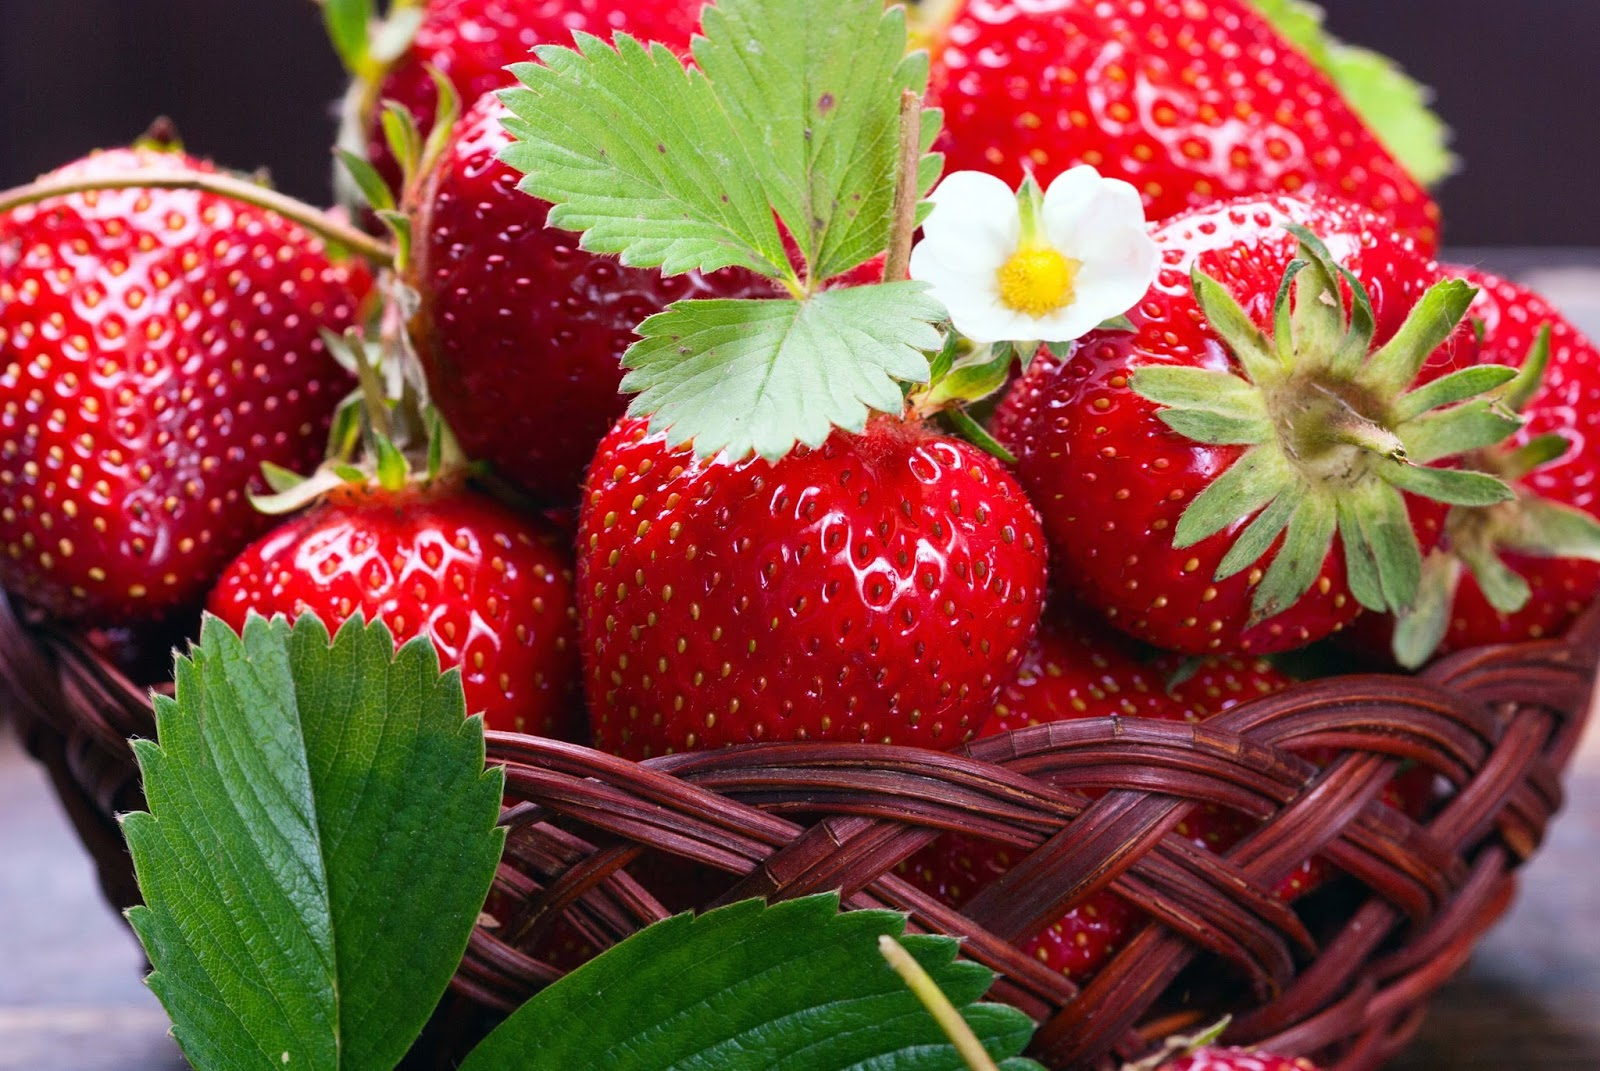 Download Hd Wallpaper Of Strawberry Juice: Mix Fruit Wallpapers